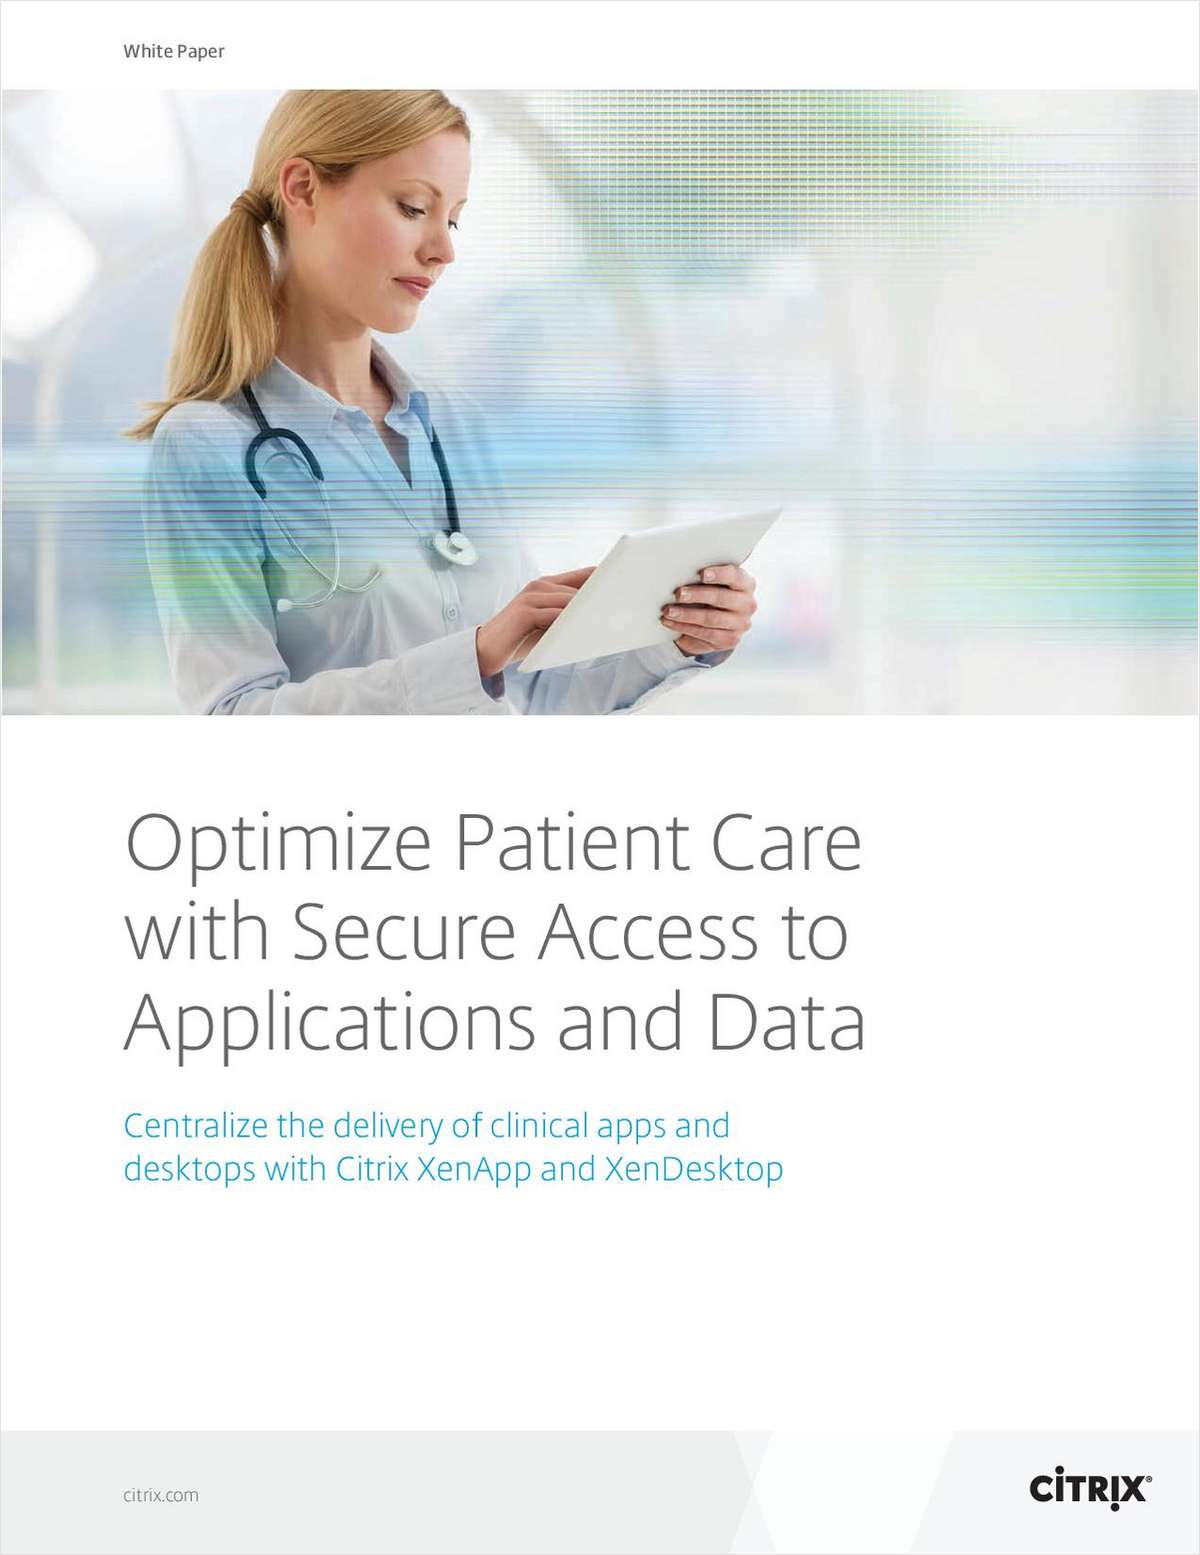 Optimizing Patient Care with Secure Access to Applications and Data